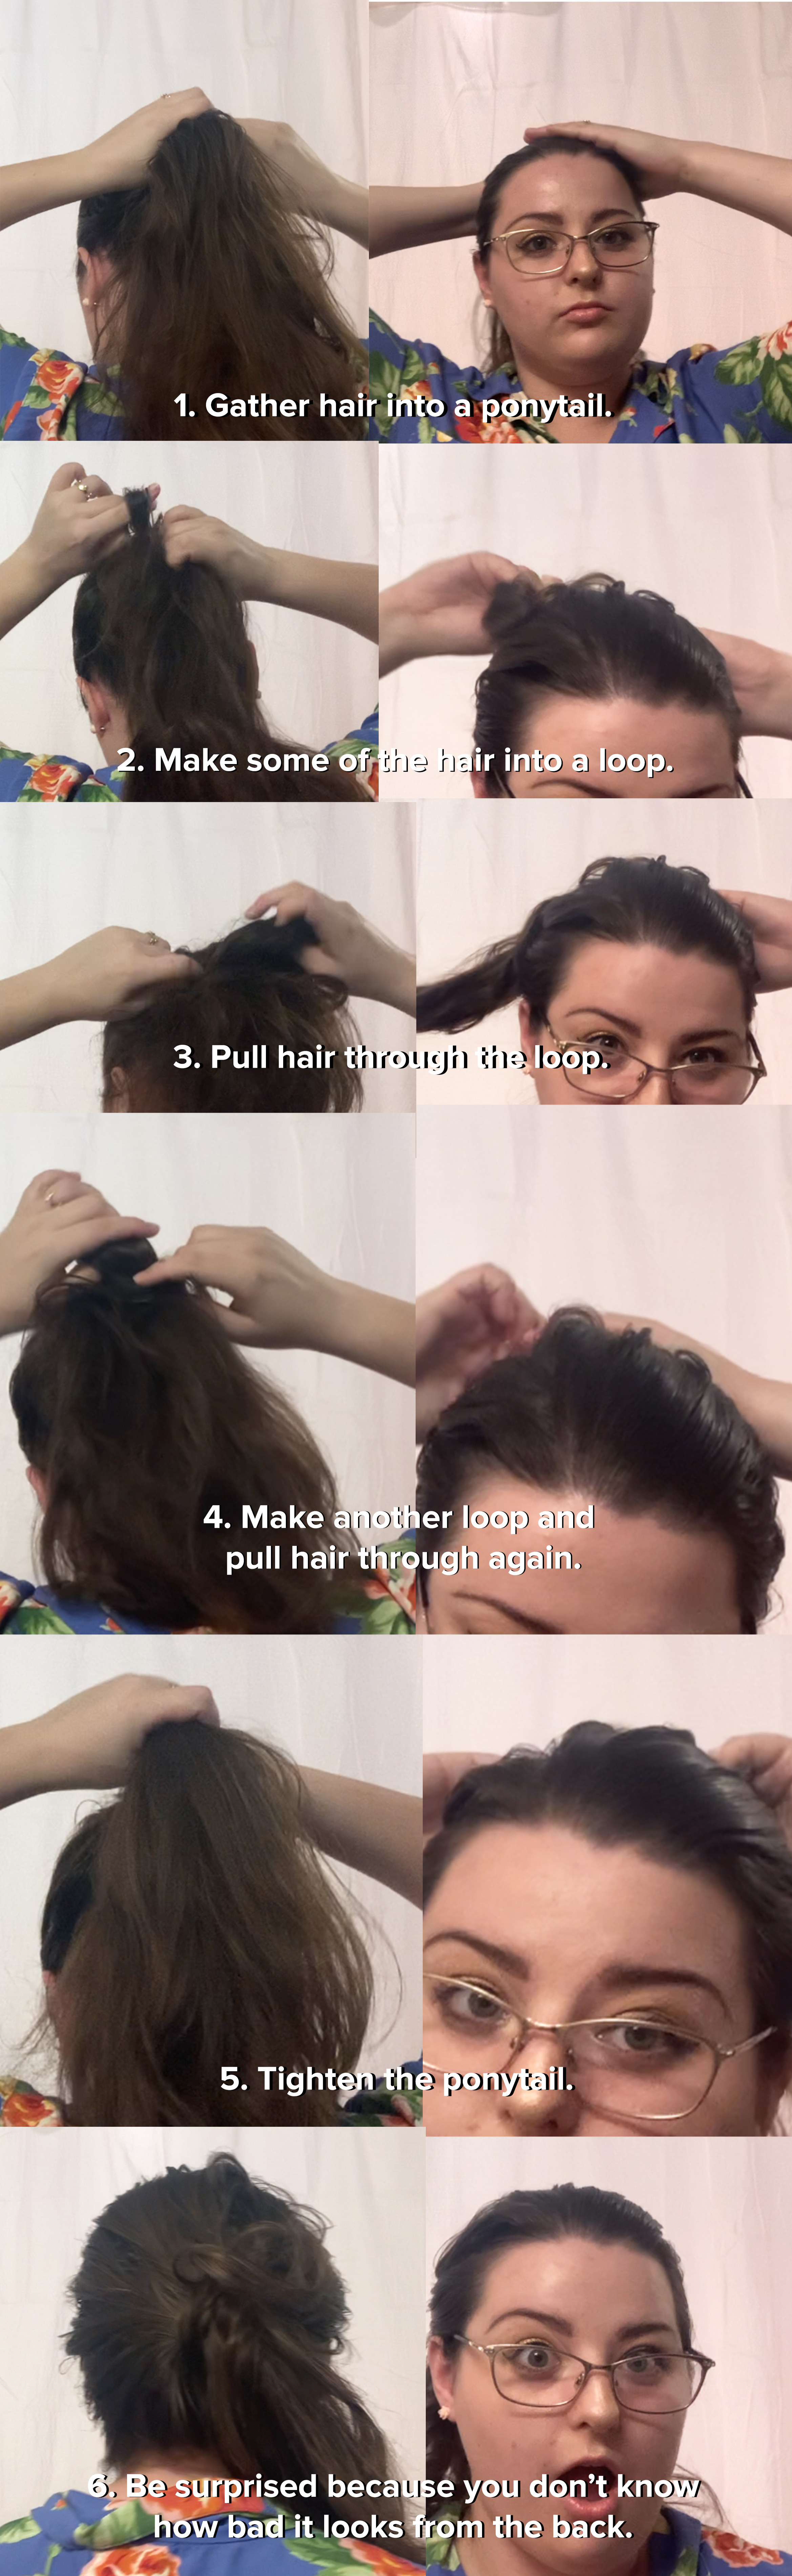 I gathered my hair into a ponytail, made some of it into a loop, pulled my hair through the loop, then was very surprised and thought it looked good from the front, even though it was an unsightly mess in the back